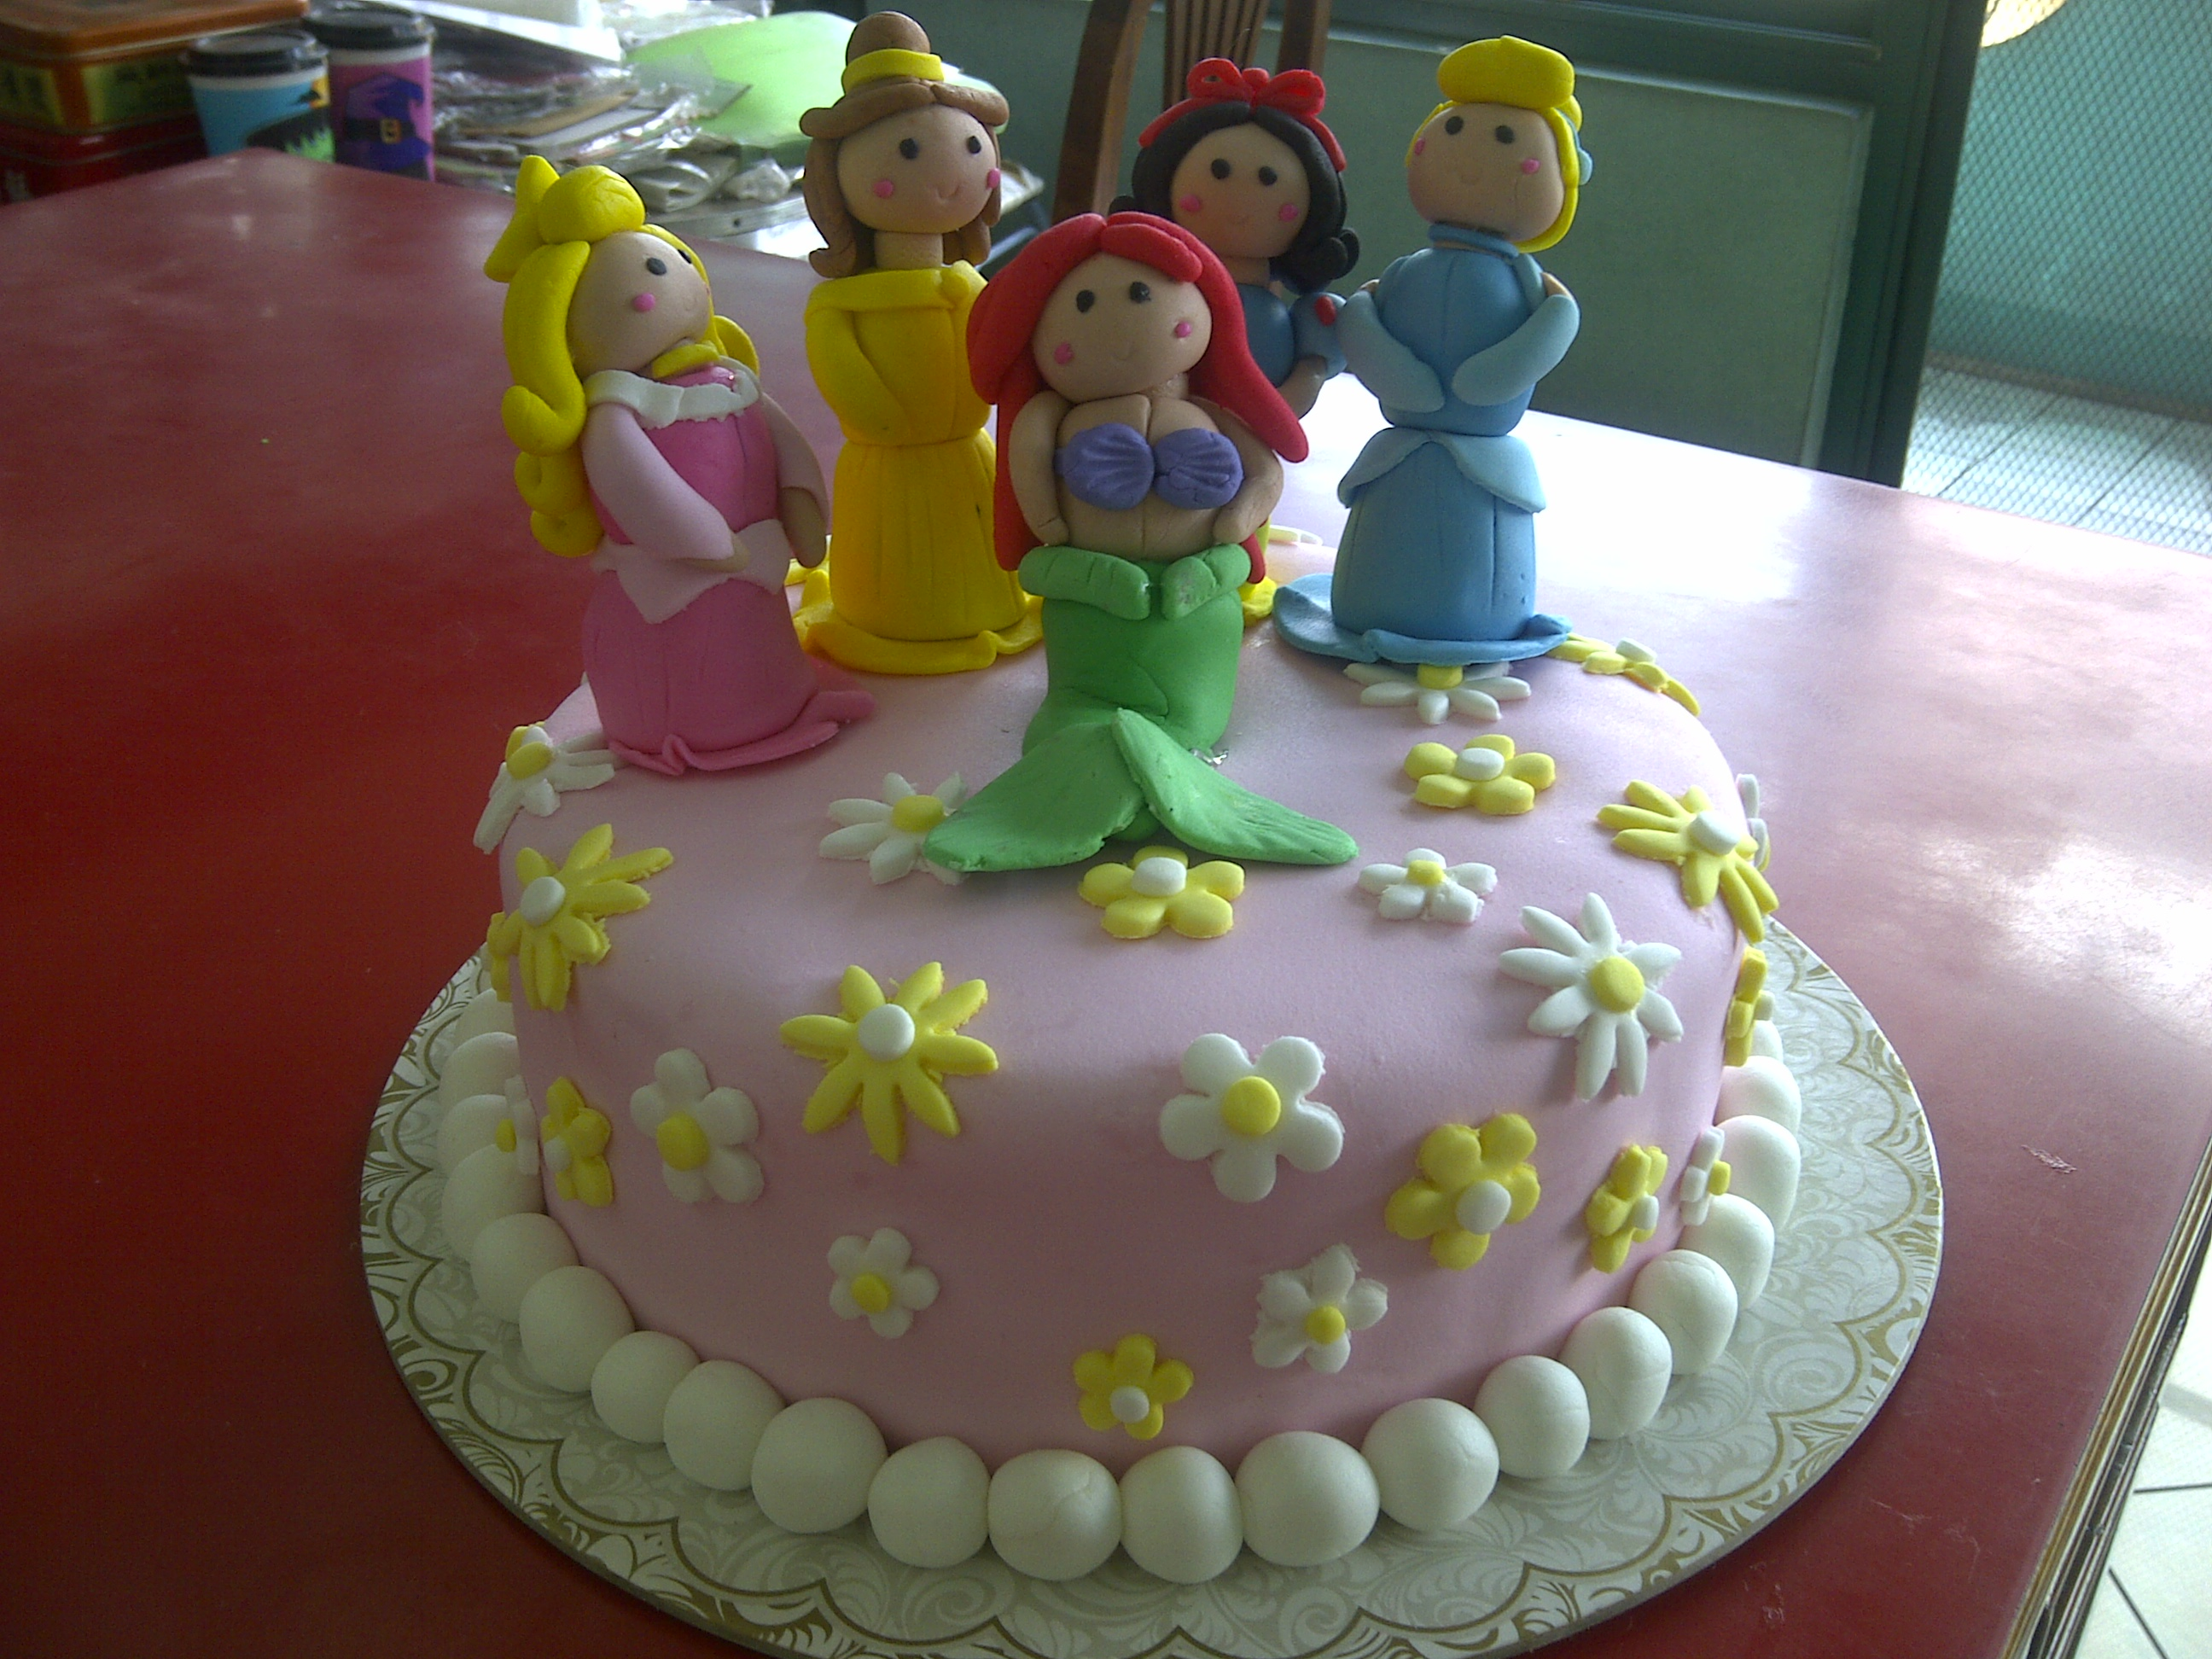 Disney Princess Fondant Cake